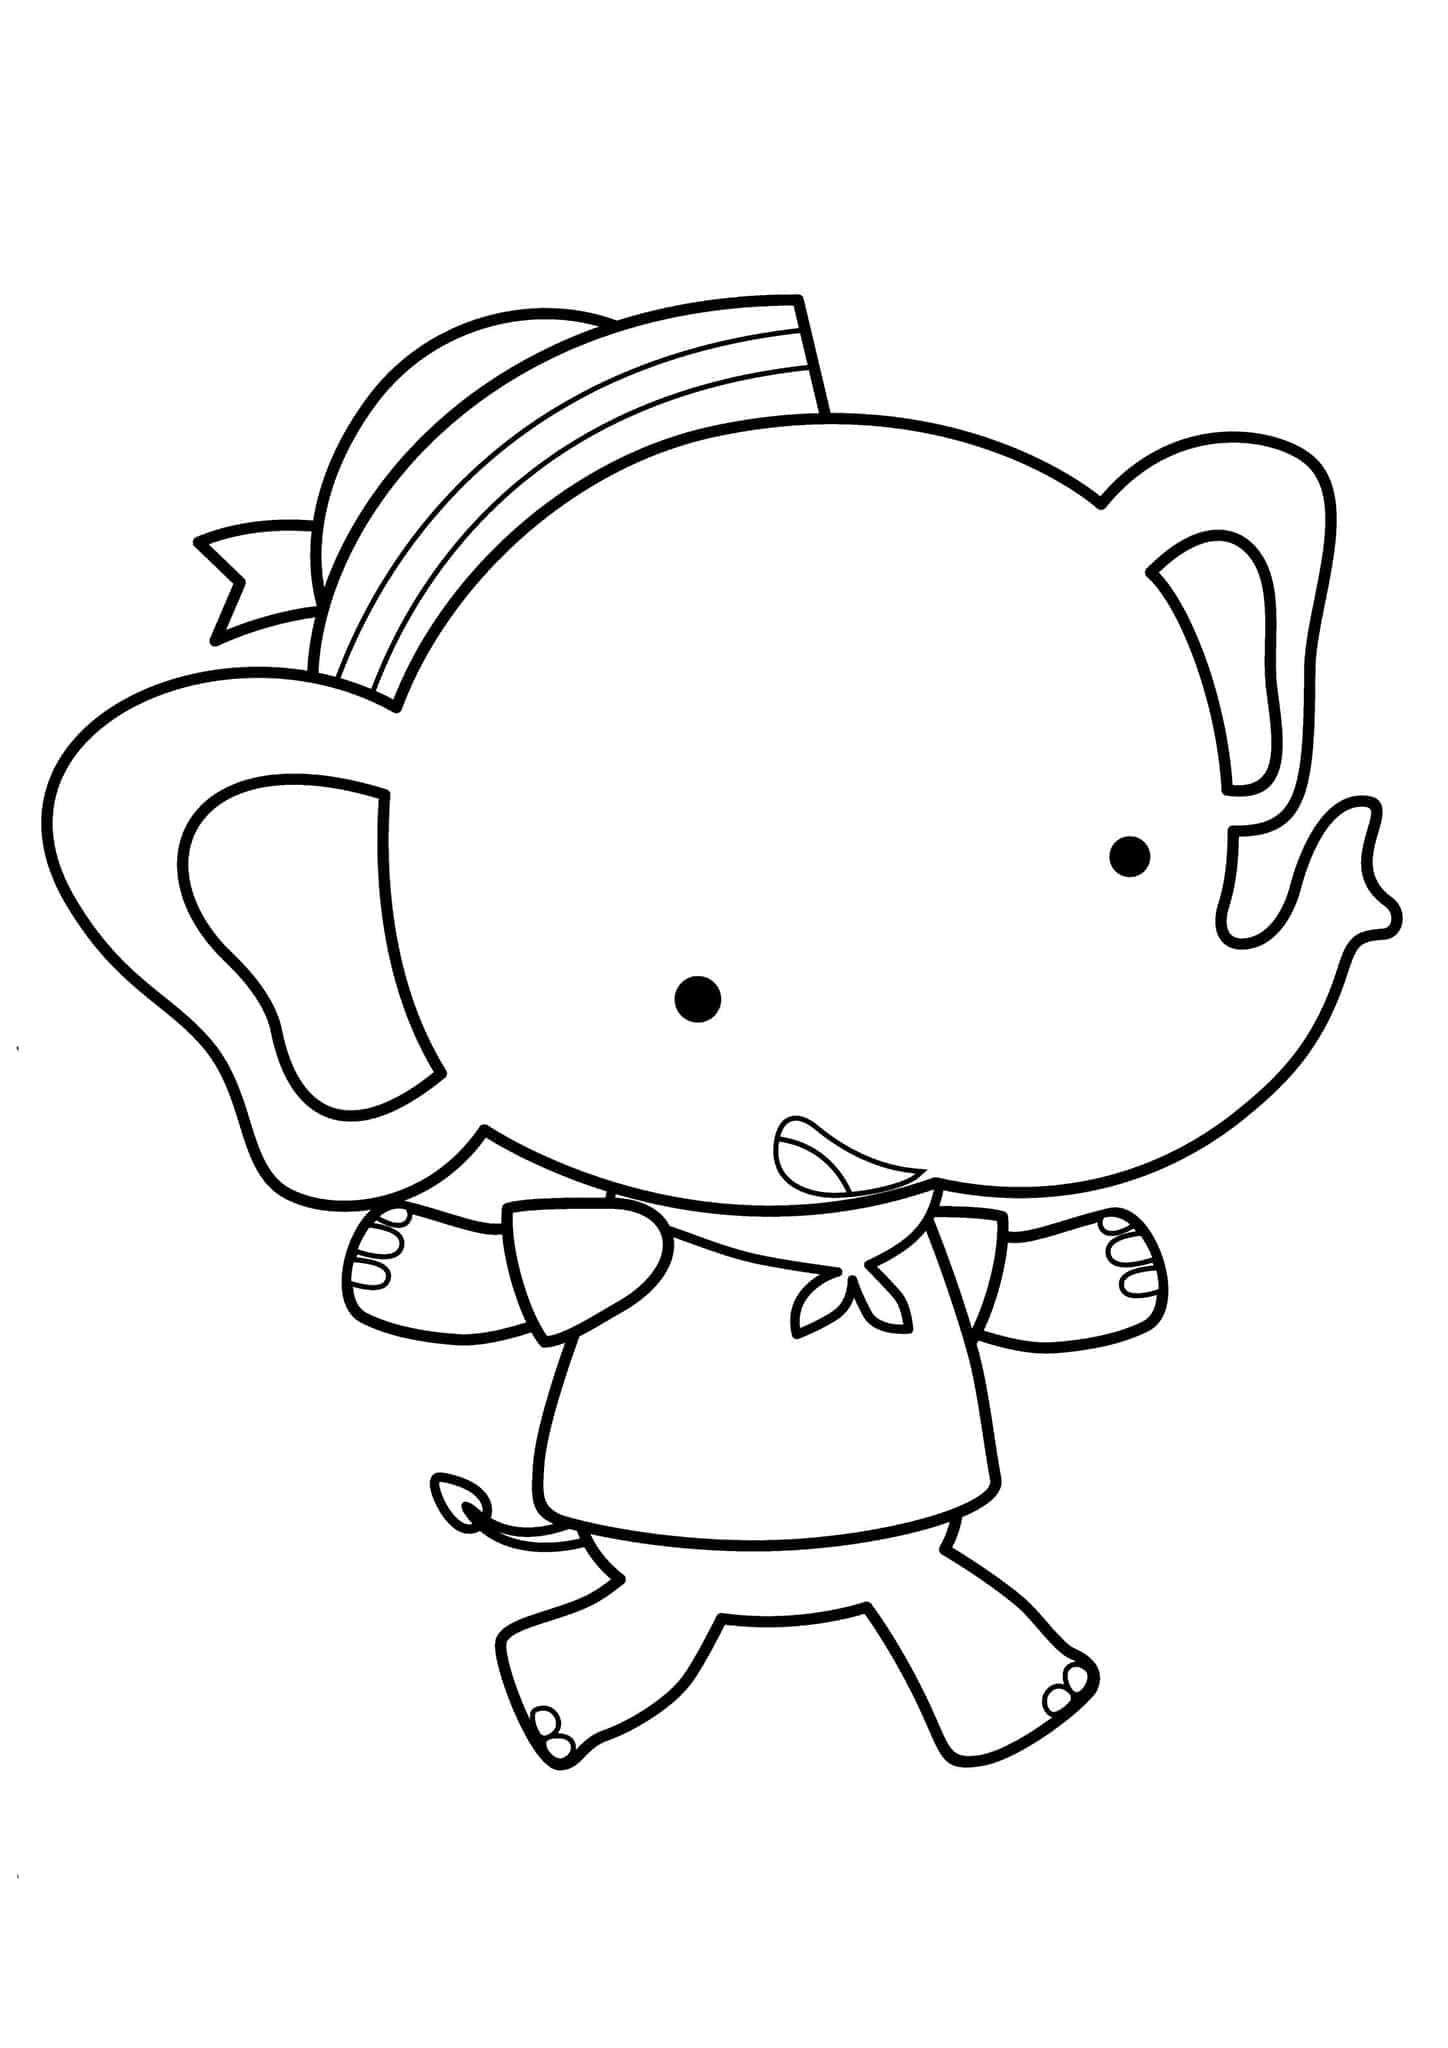 simple elephant coloring page free easy to print elephant coloring pages tulamama page simple coloring elephant